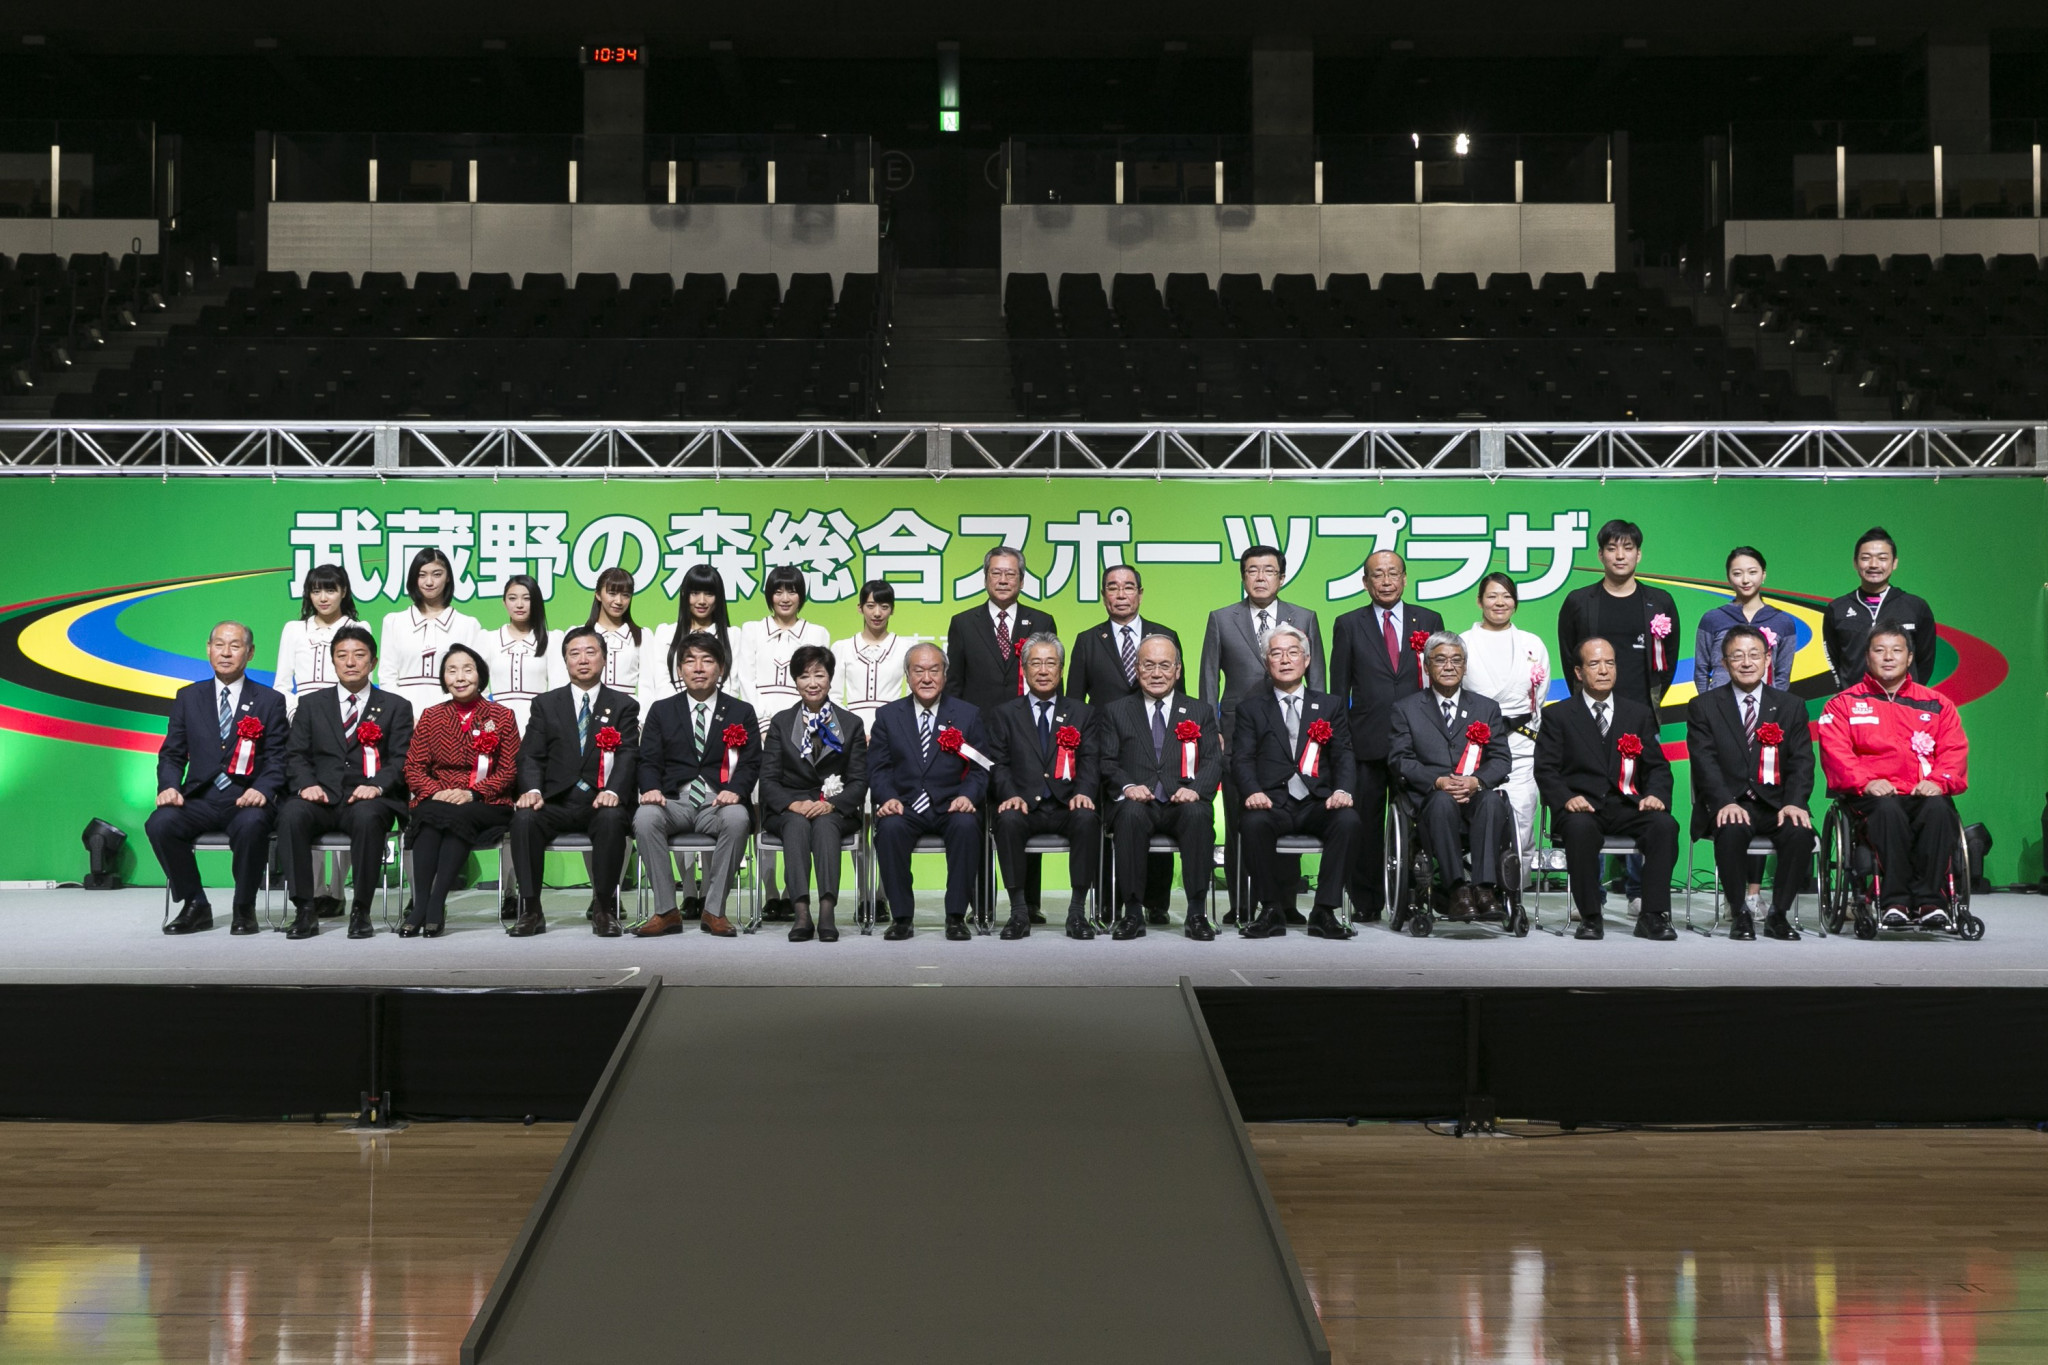 First new permanent Tokyo 2020 venue opens as organisers claim preparations are on track